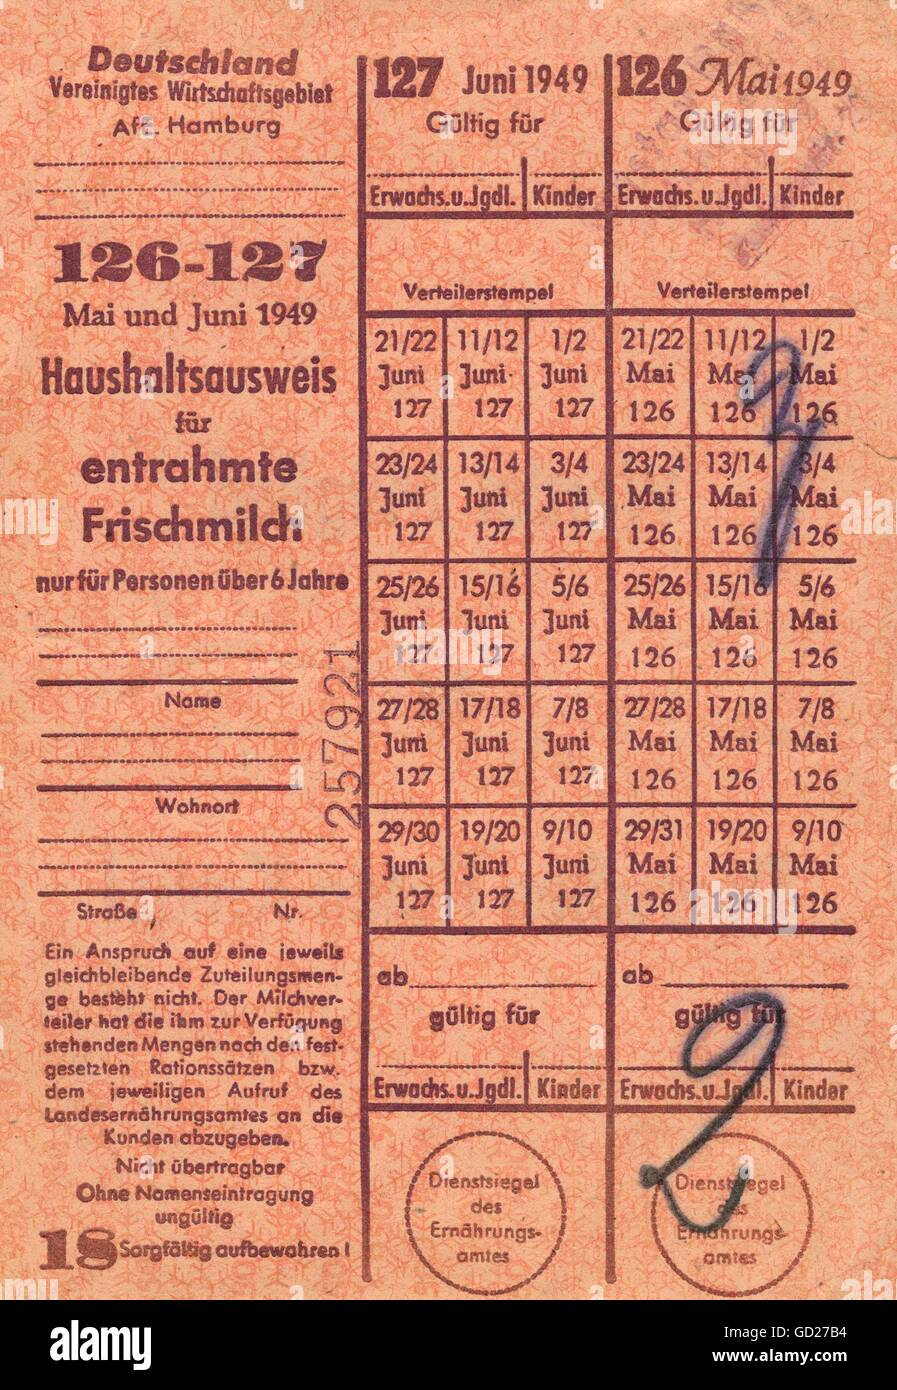 post war period, economy, food ration card for fresh milk, Hamburg, Germany, valid in May and June 1949 the Second - Stock Image